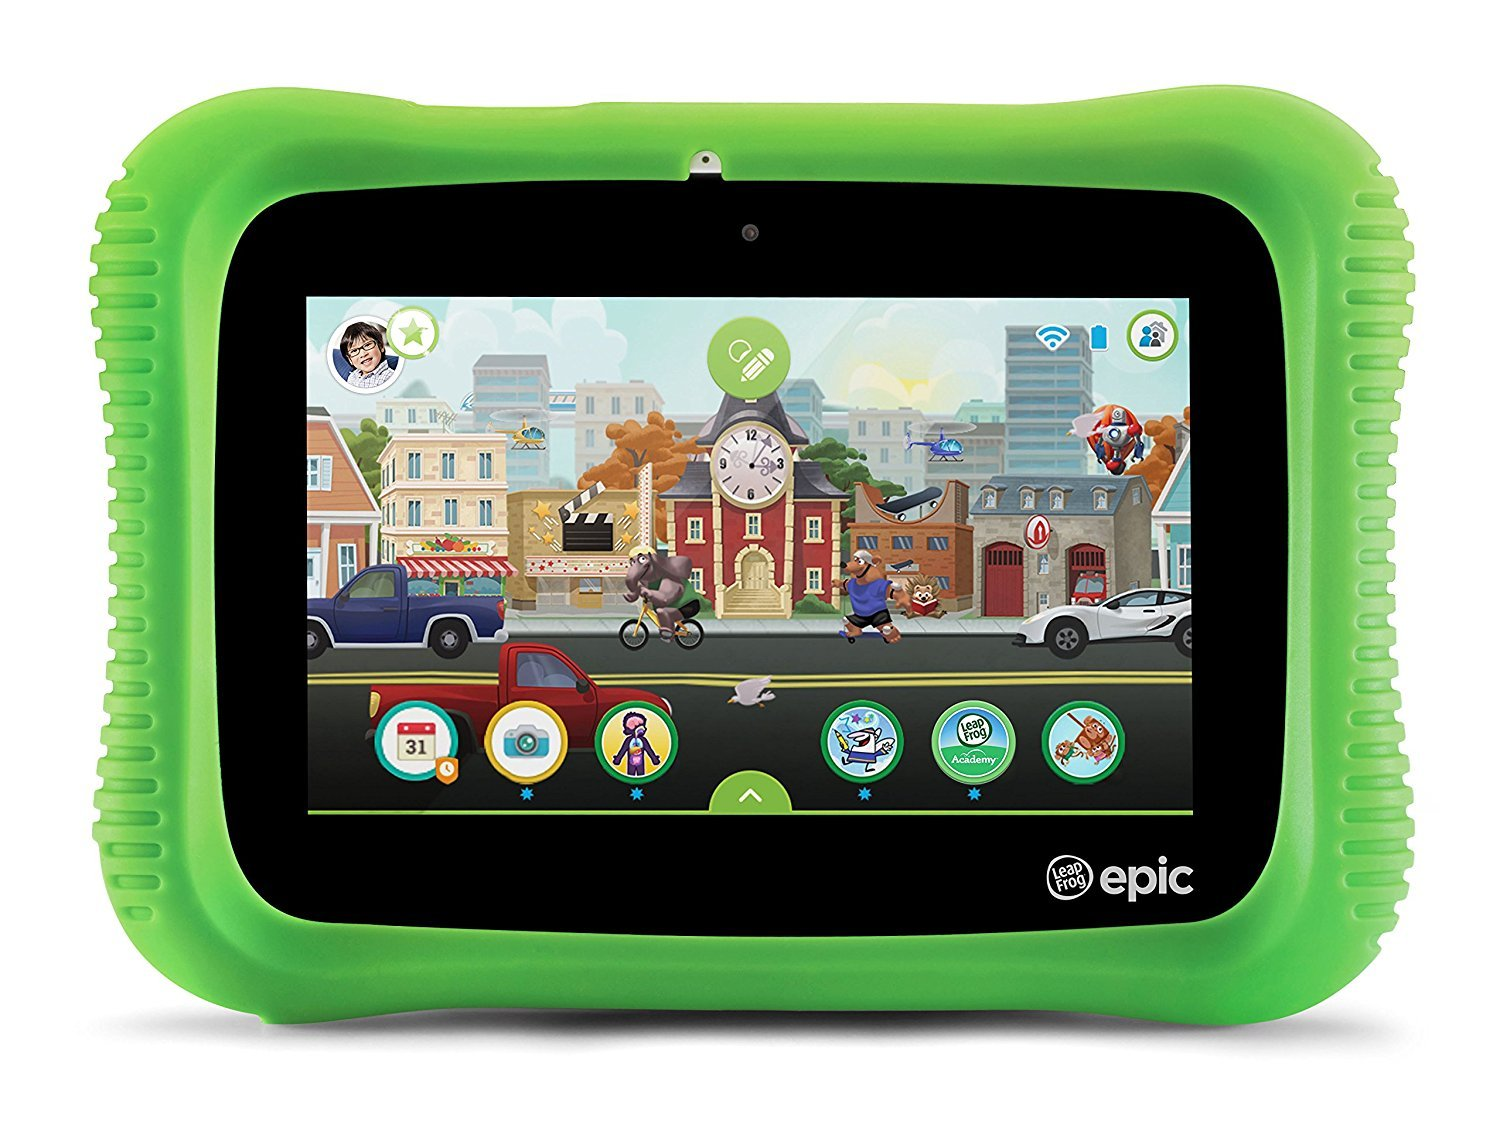 LeapFrog Epic Academy Edition by V Tech